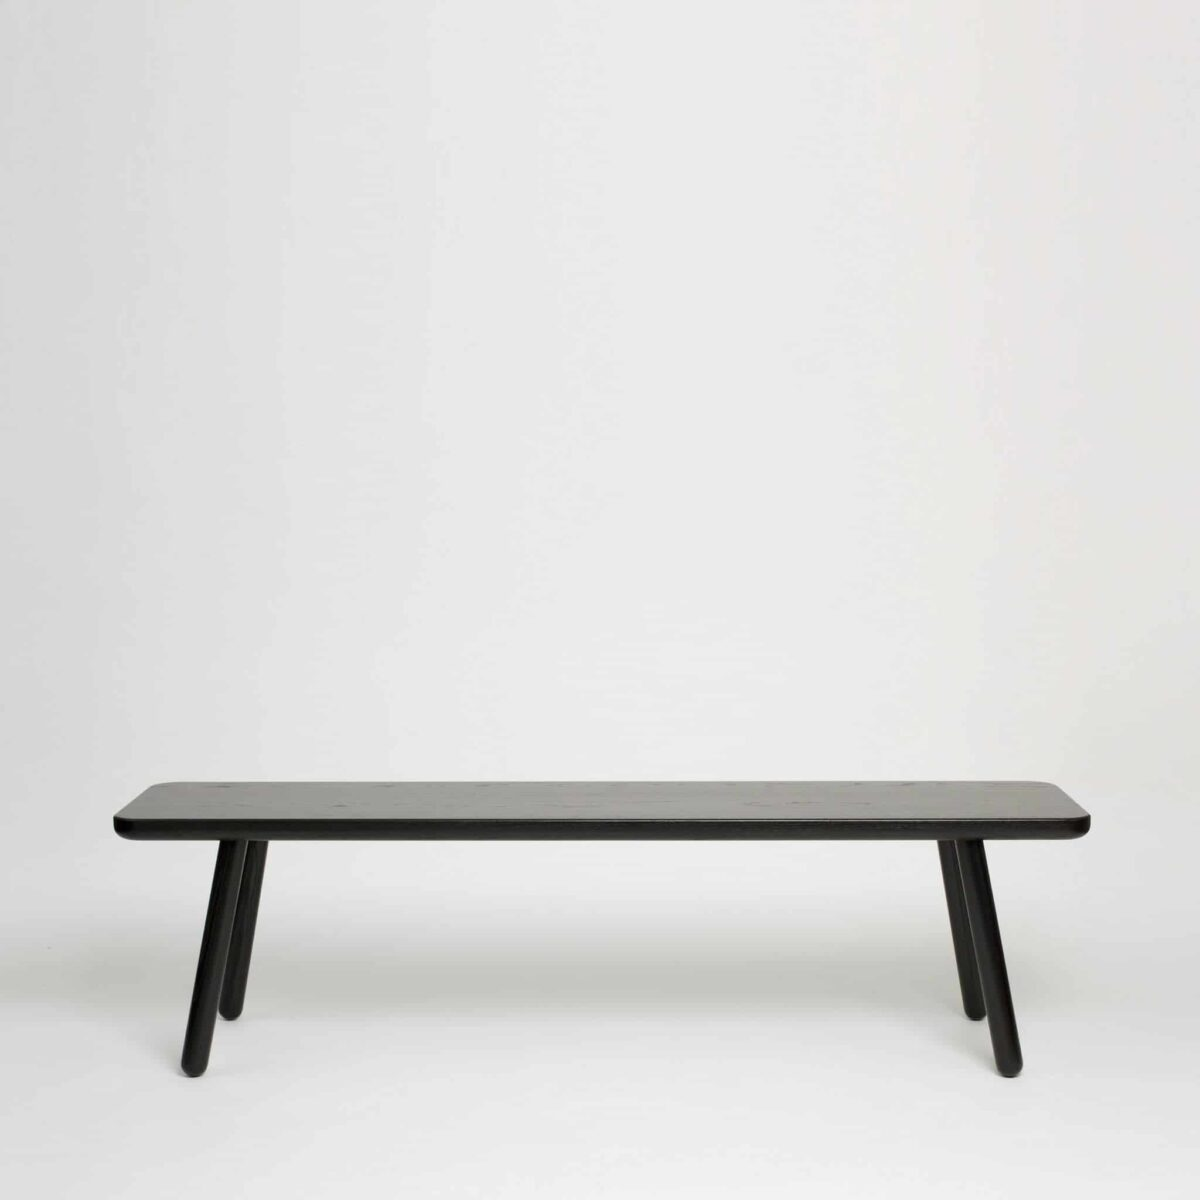 another-country-bench-one-chestnut-black-001_bd0192b4-6a9b-4f19-881a-ee2bed520473.jpg